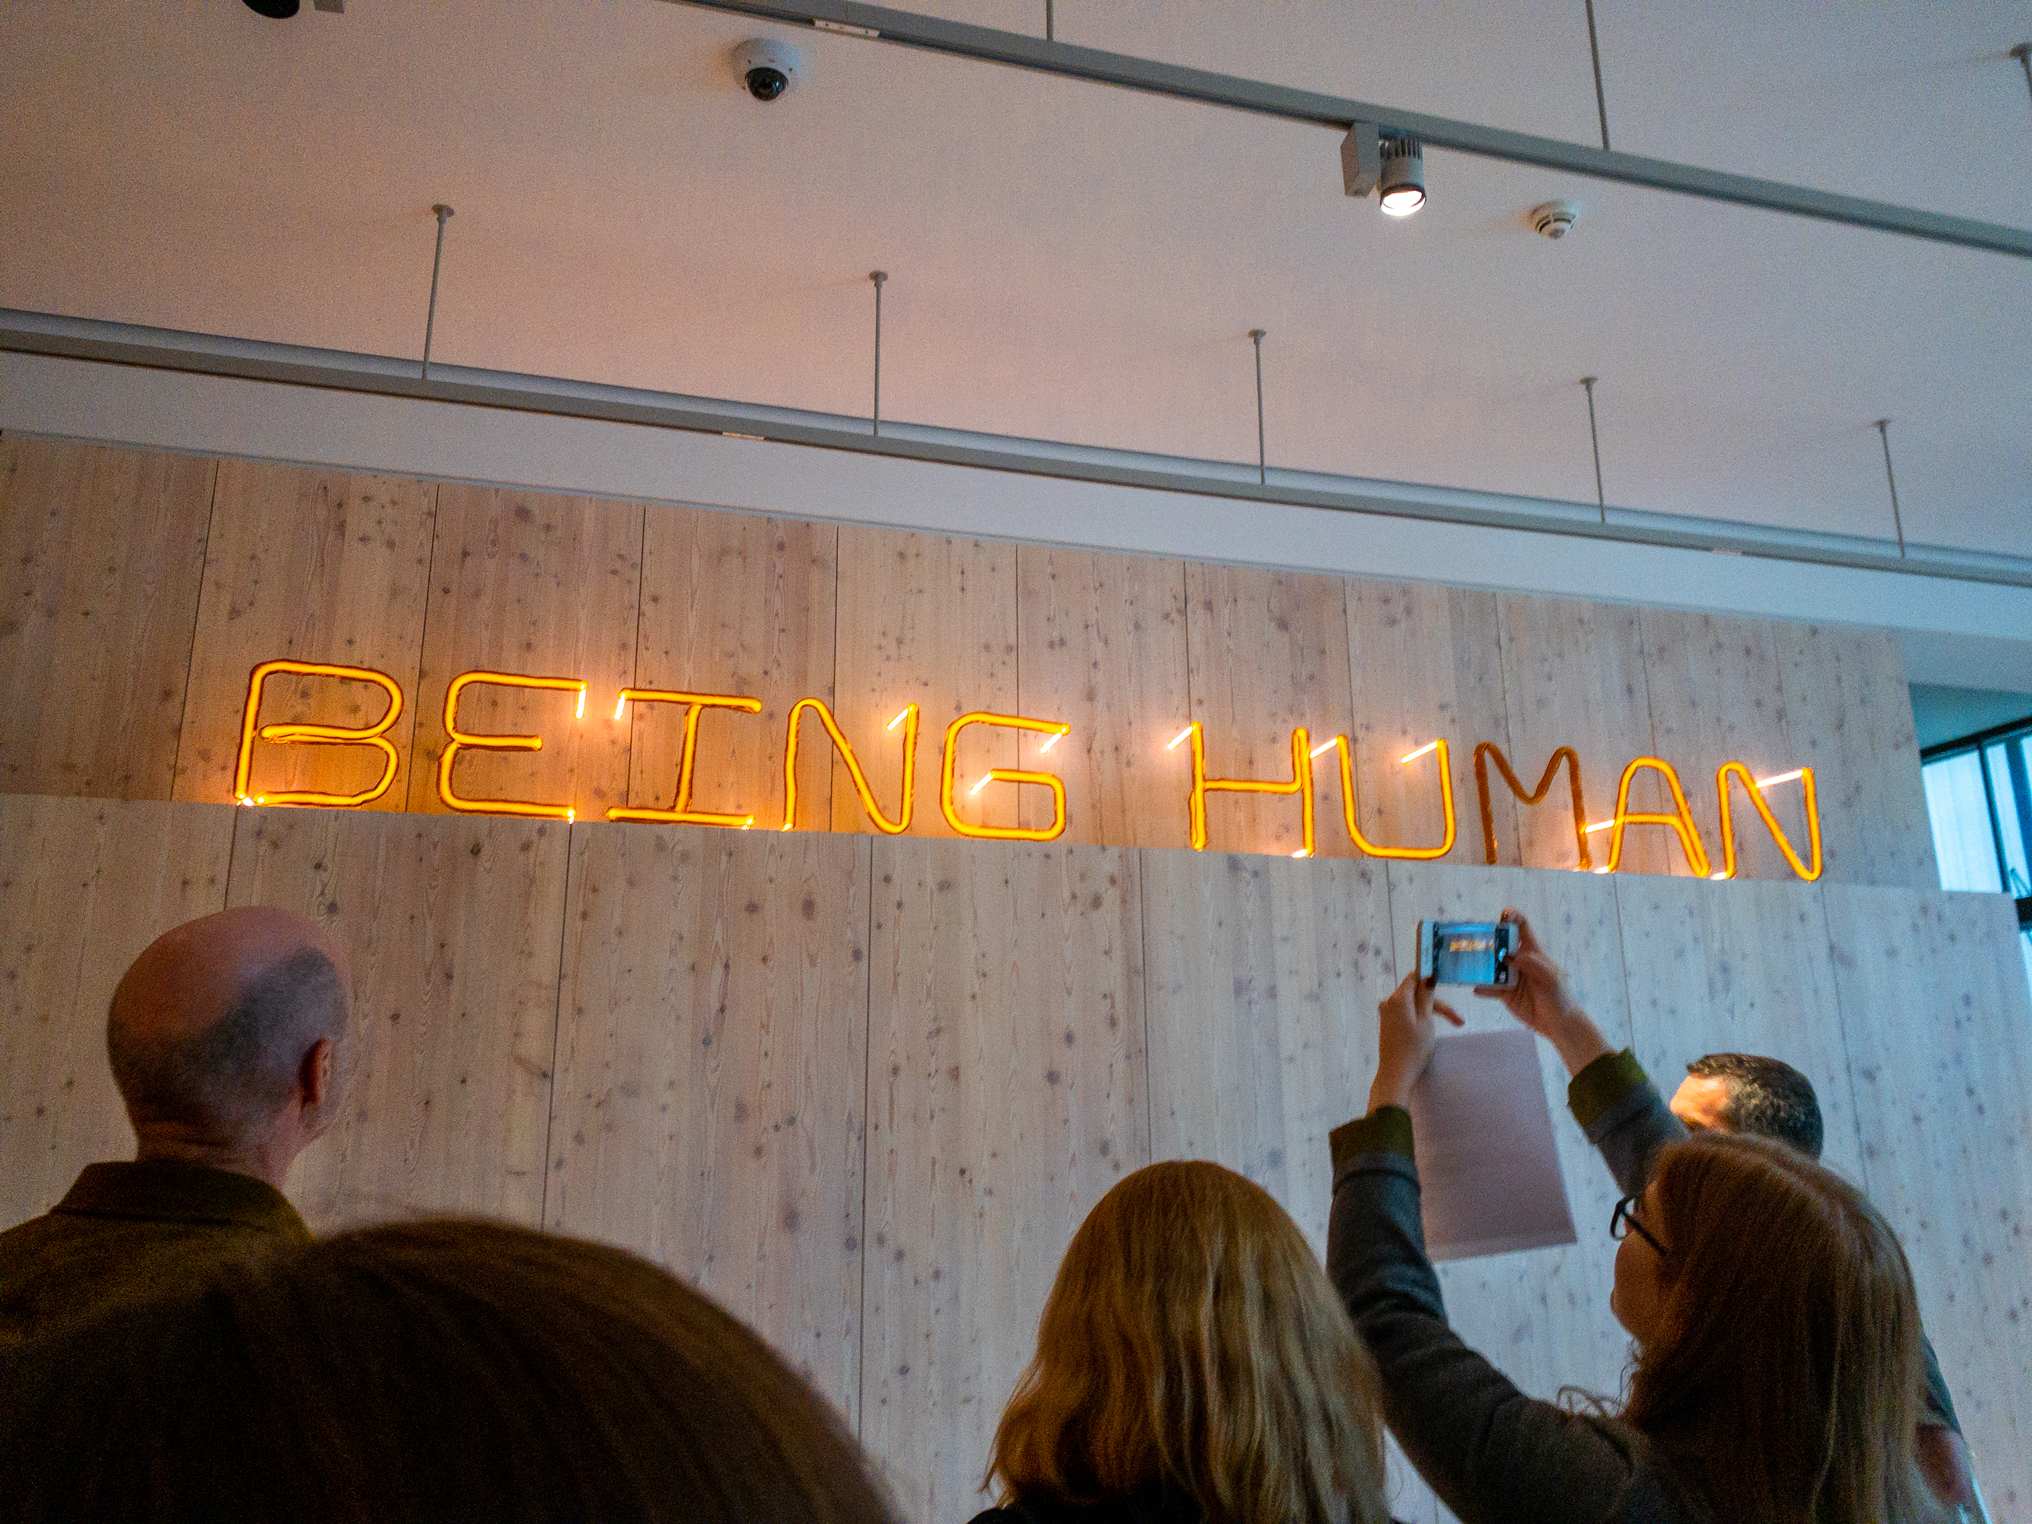 Entrance of the being human exhibition